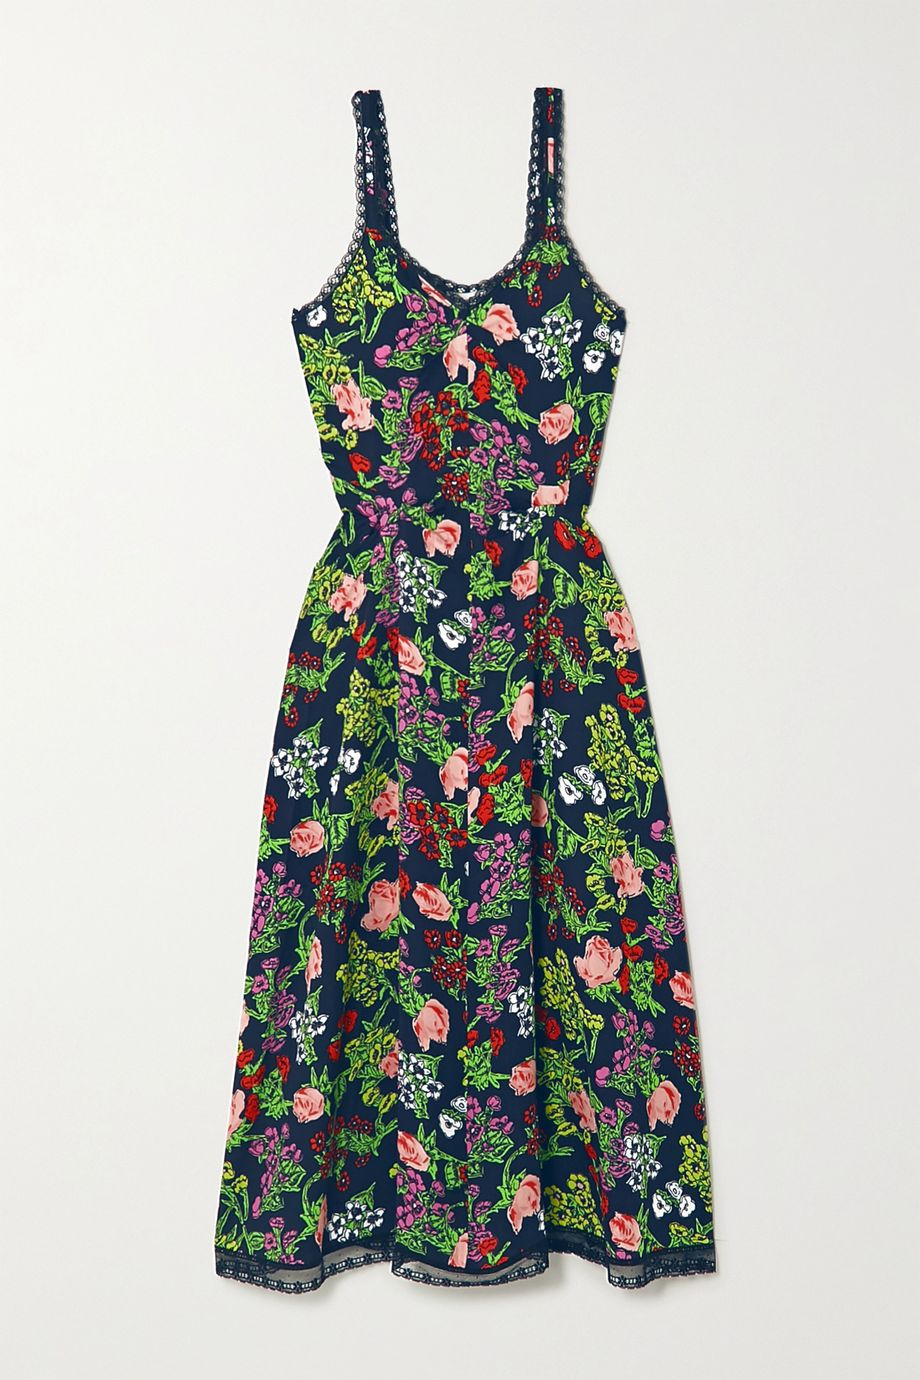 Molly Goddard Romy lace-trimmed floral-print woven midi dress